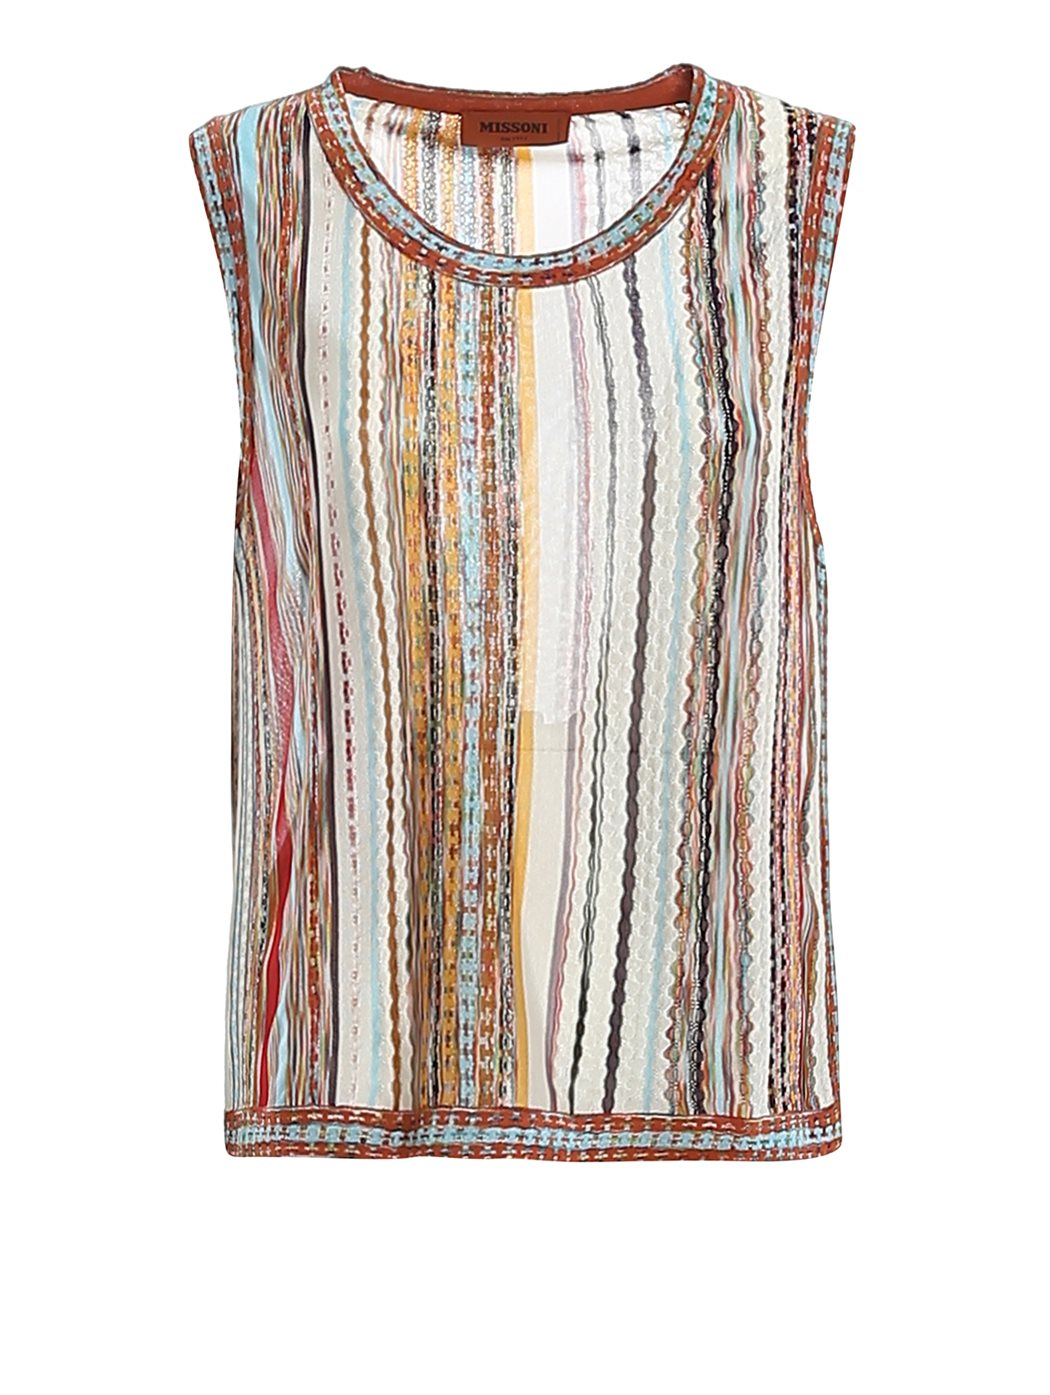 MISSONI Mdk00063 sm16t TOP